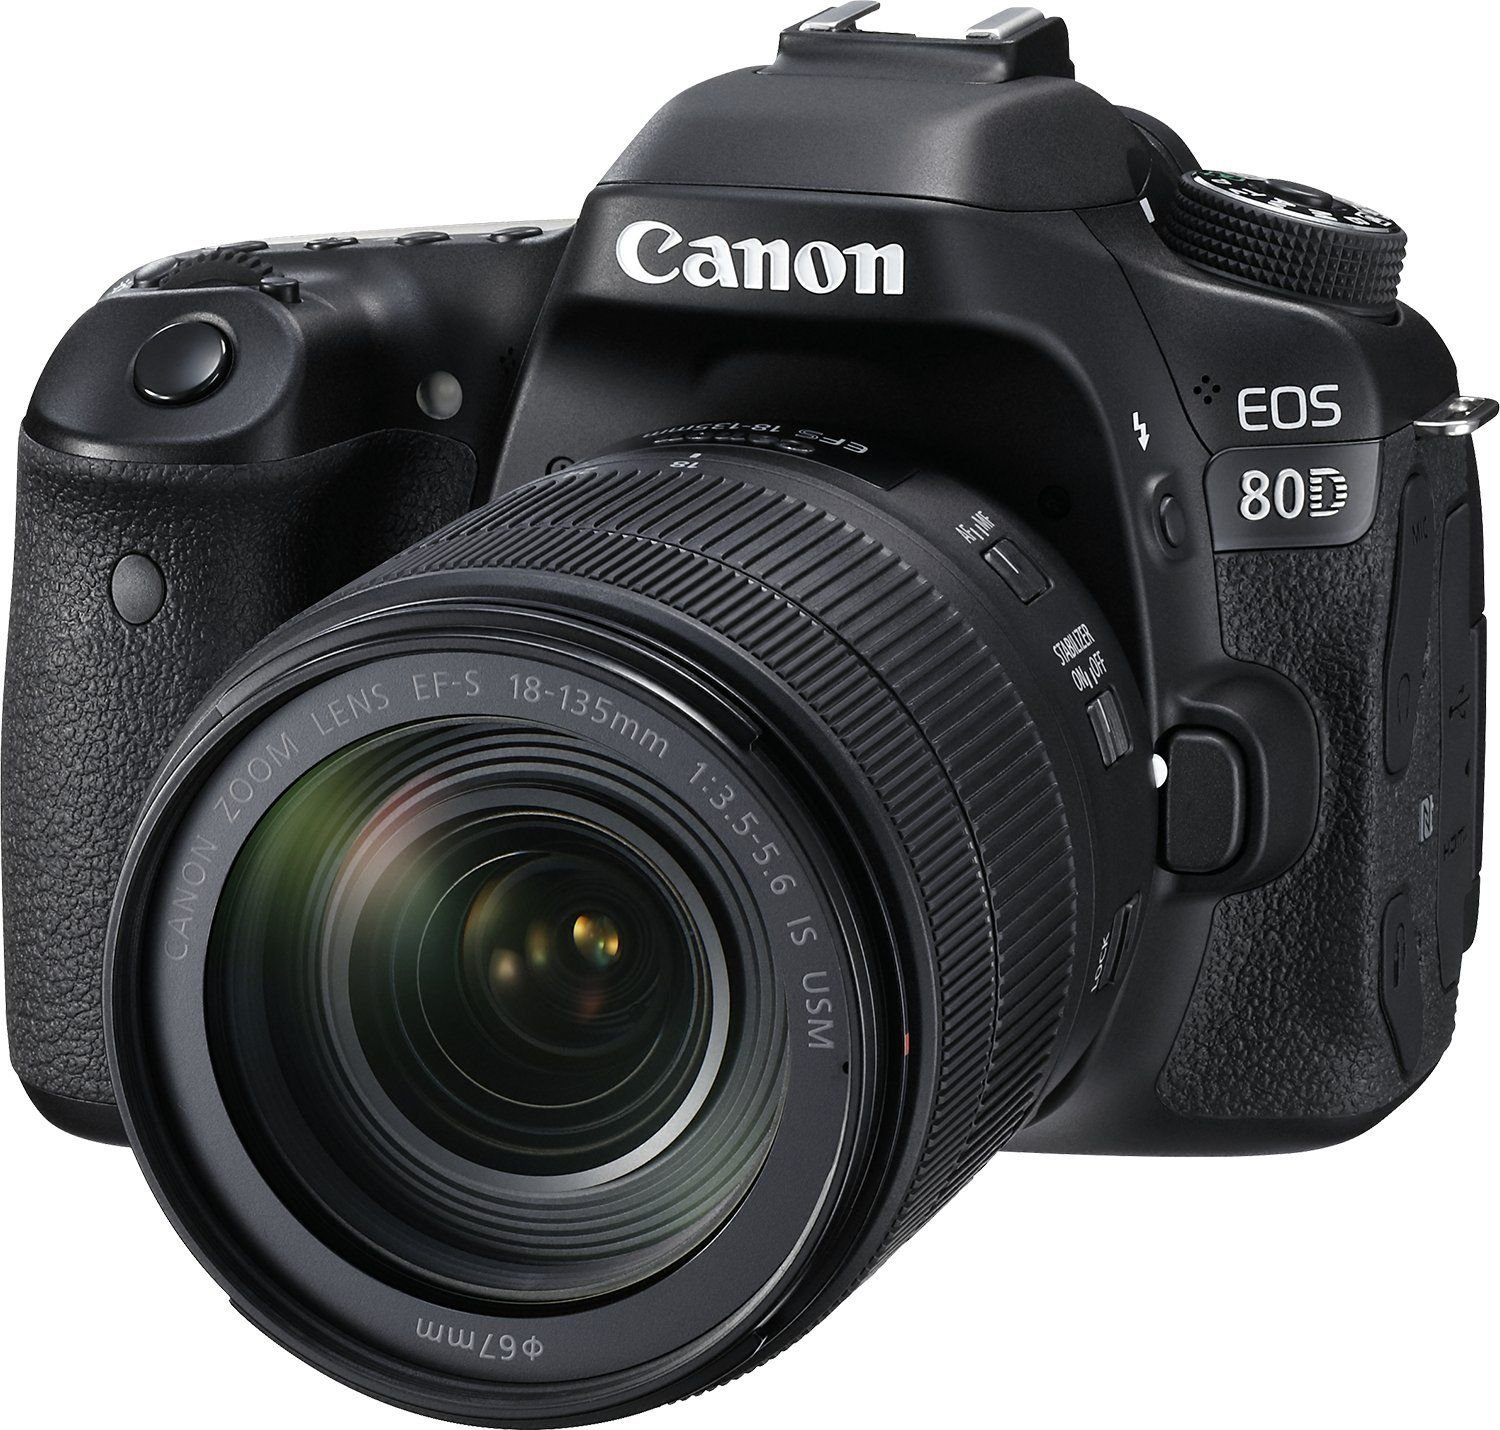 Buy Canon EOS 80D 24 2MP Digital SLR Camera Black EF S 18 135mm f 3 5 5 6 Image Stabilization USM Lens Kit 16GB Memory Card line at Low Price in